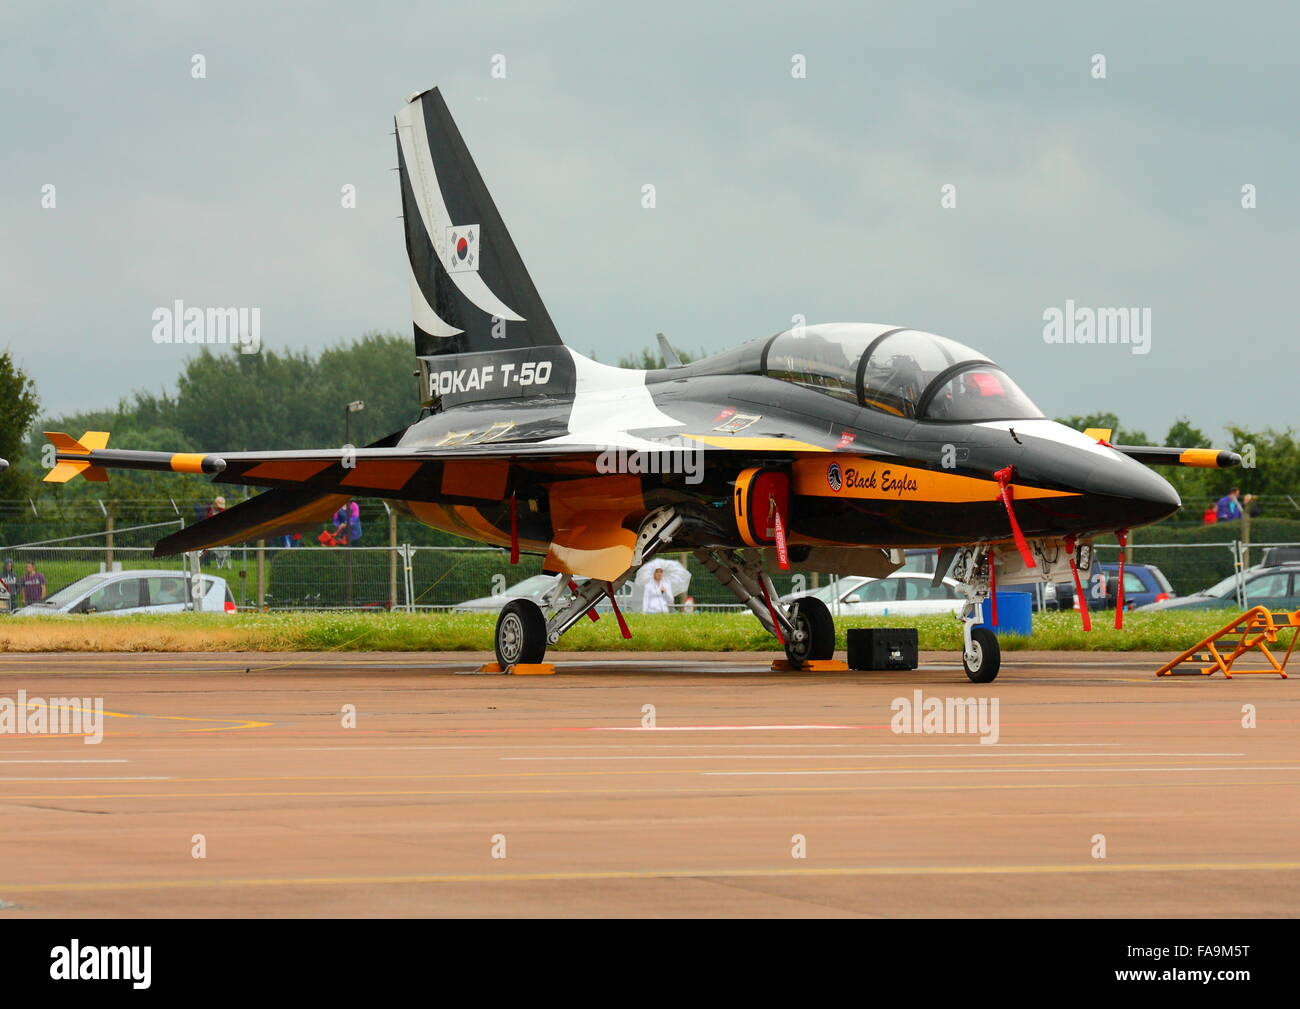 Korean Aerospace T-50 Golden Eagle at the RIAT at Fairford - Stock Image